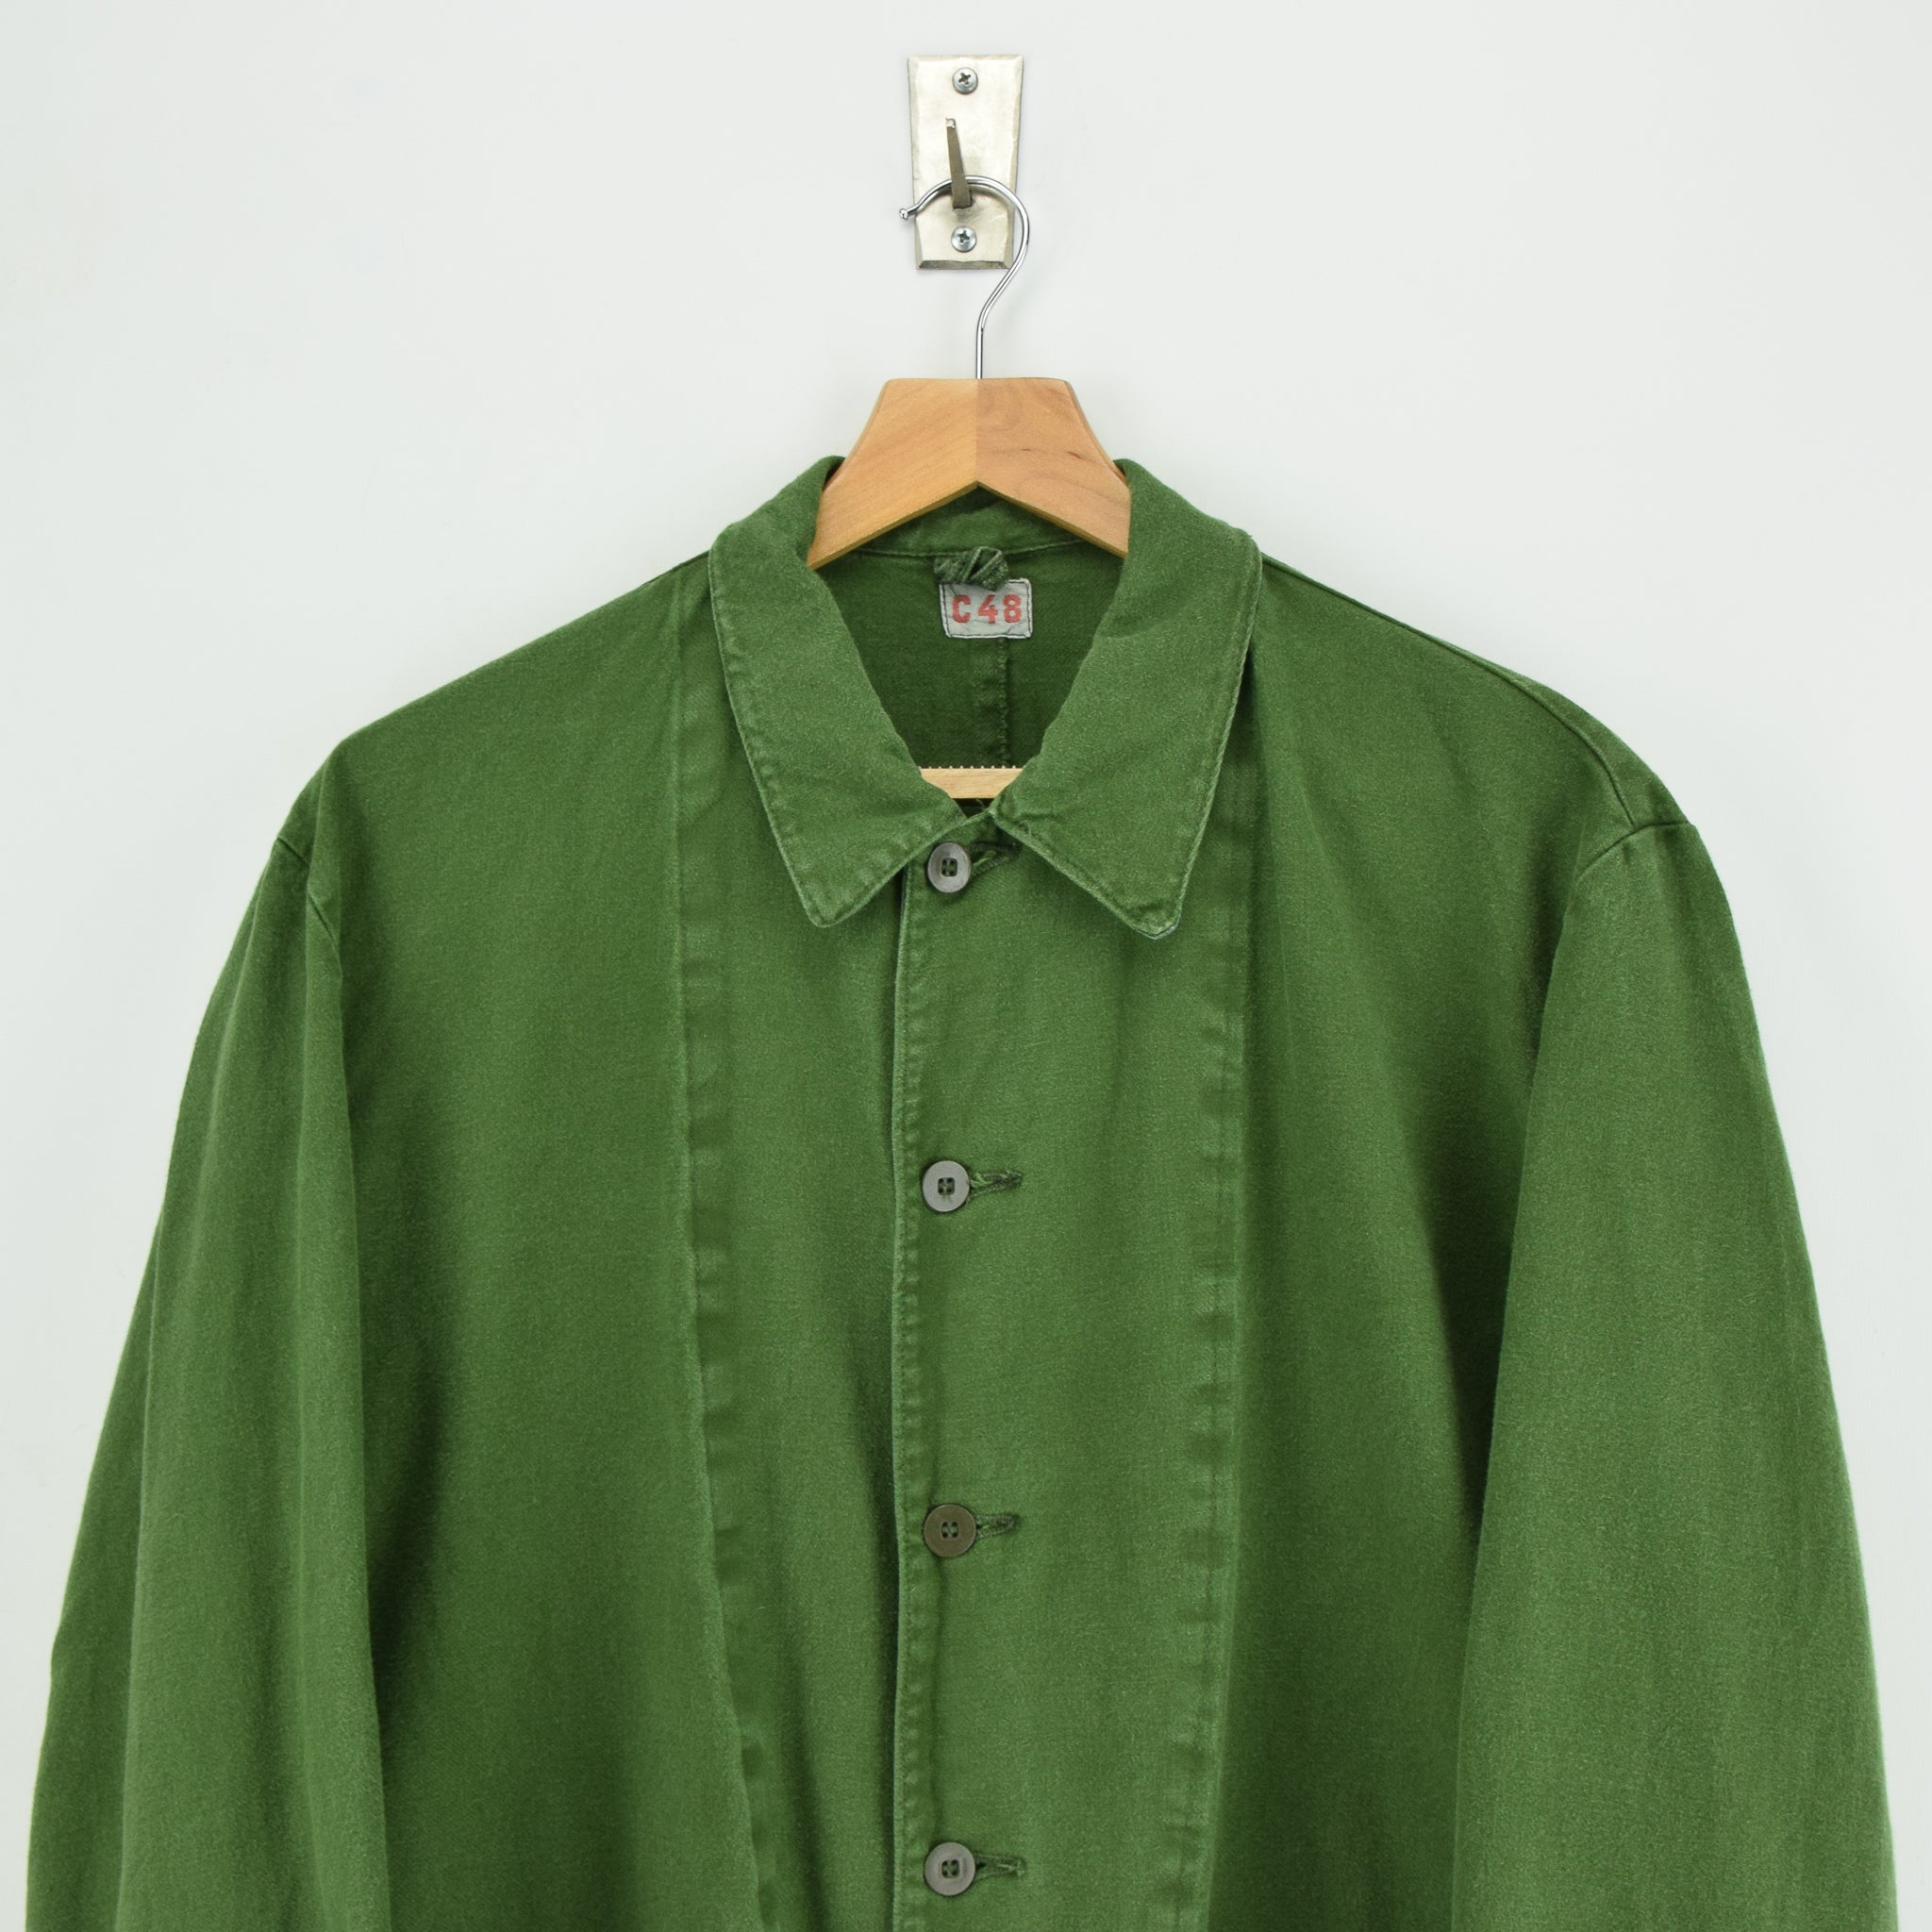 Vintage Swedish Worker Style Distressed Green Military Field Jacket M / L chest